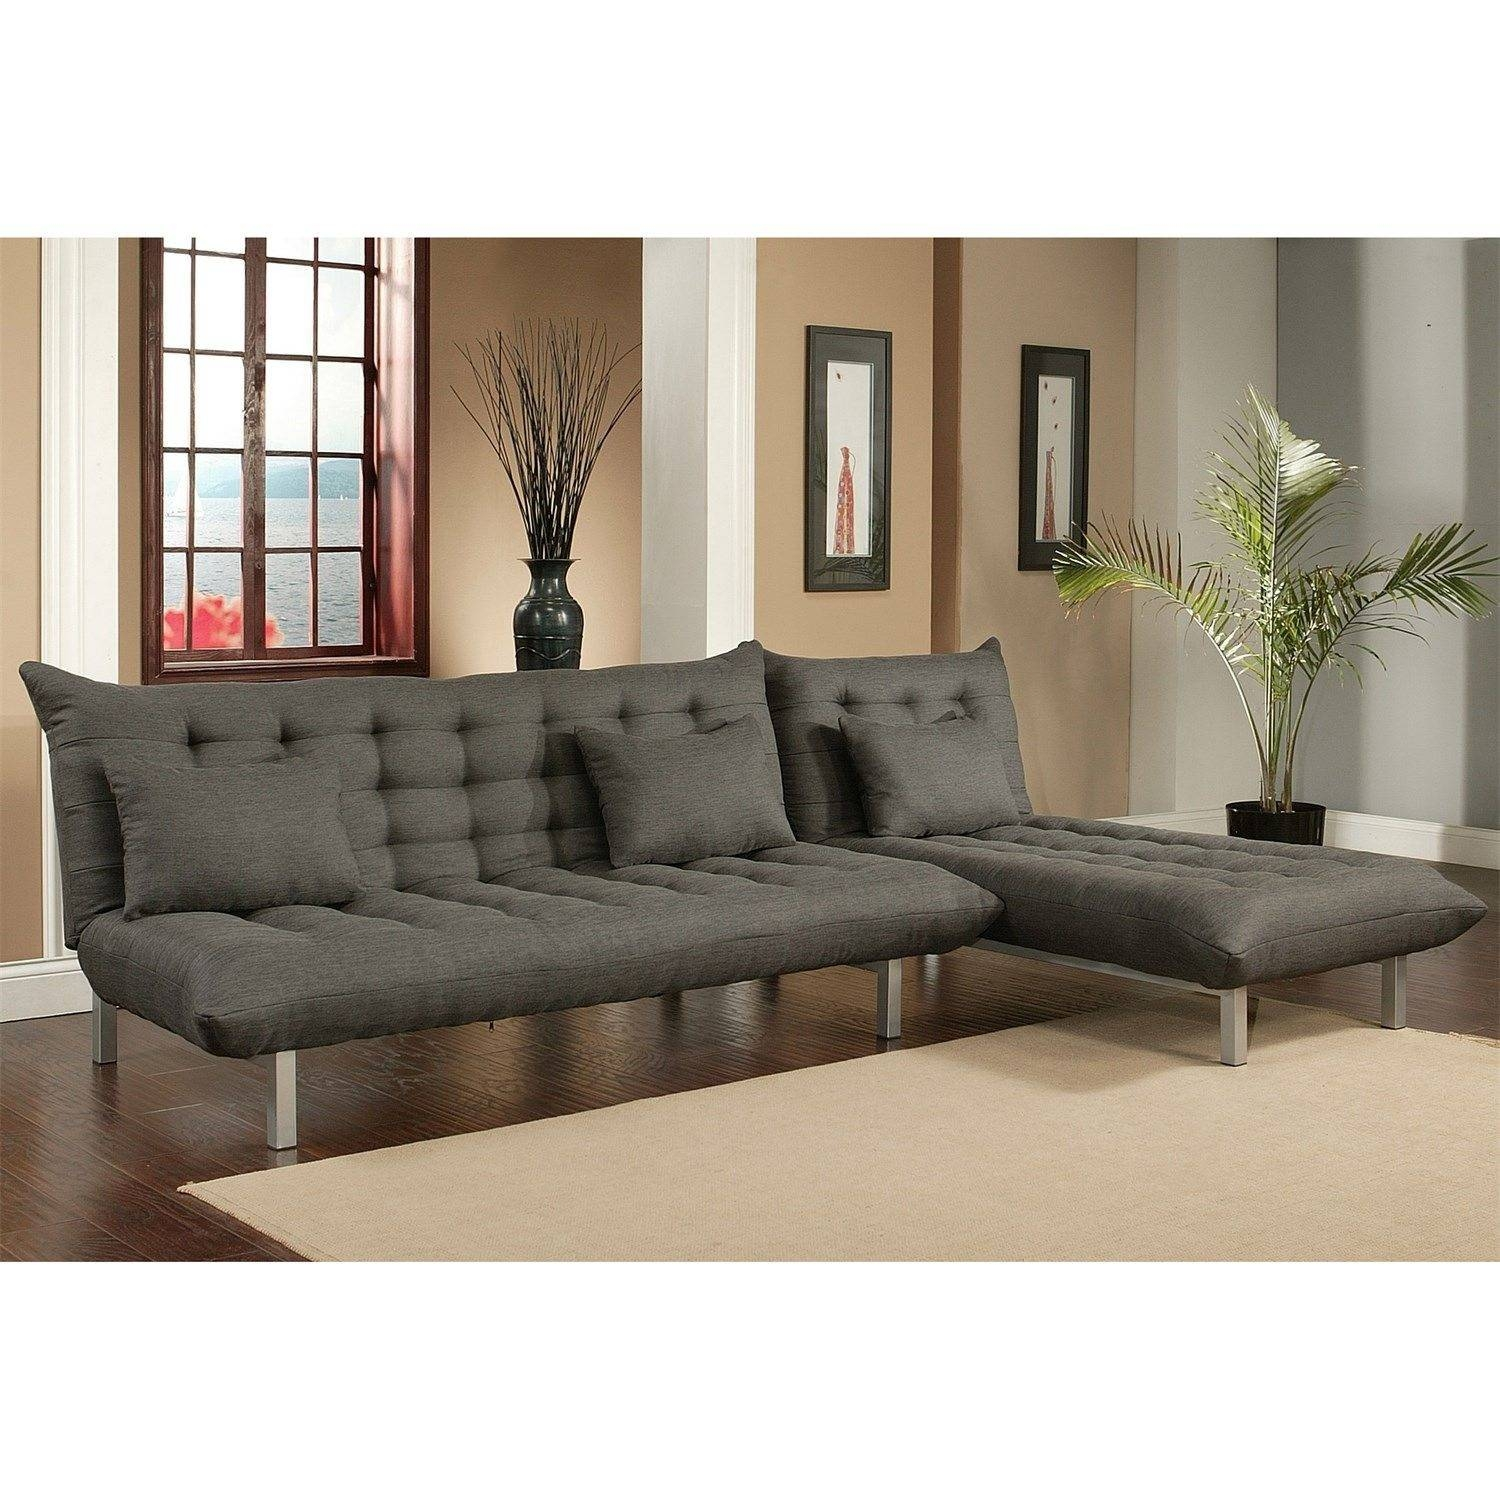 Abbyson Sectional Sofa 51 With Abbyson Sectional Sofa regarding Abbyson Sectional Sofa (Image 11 of 30)